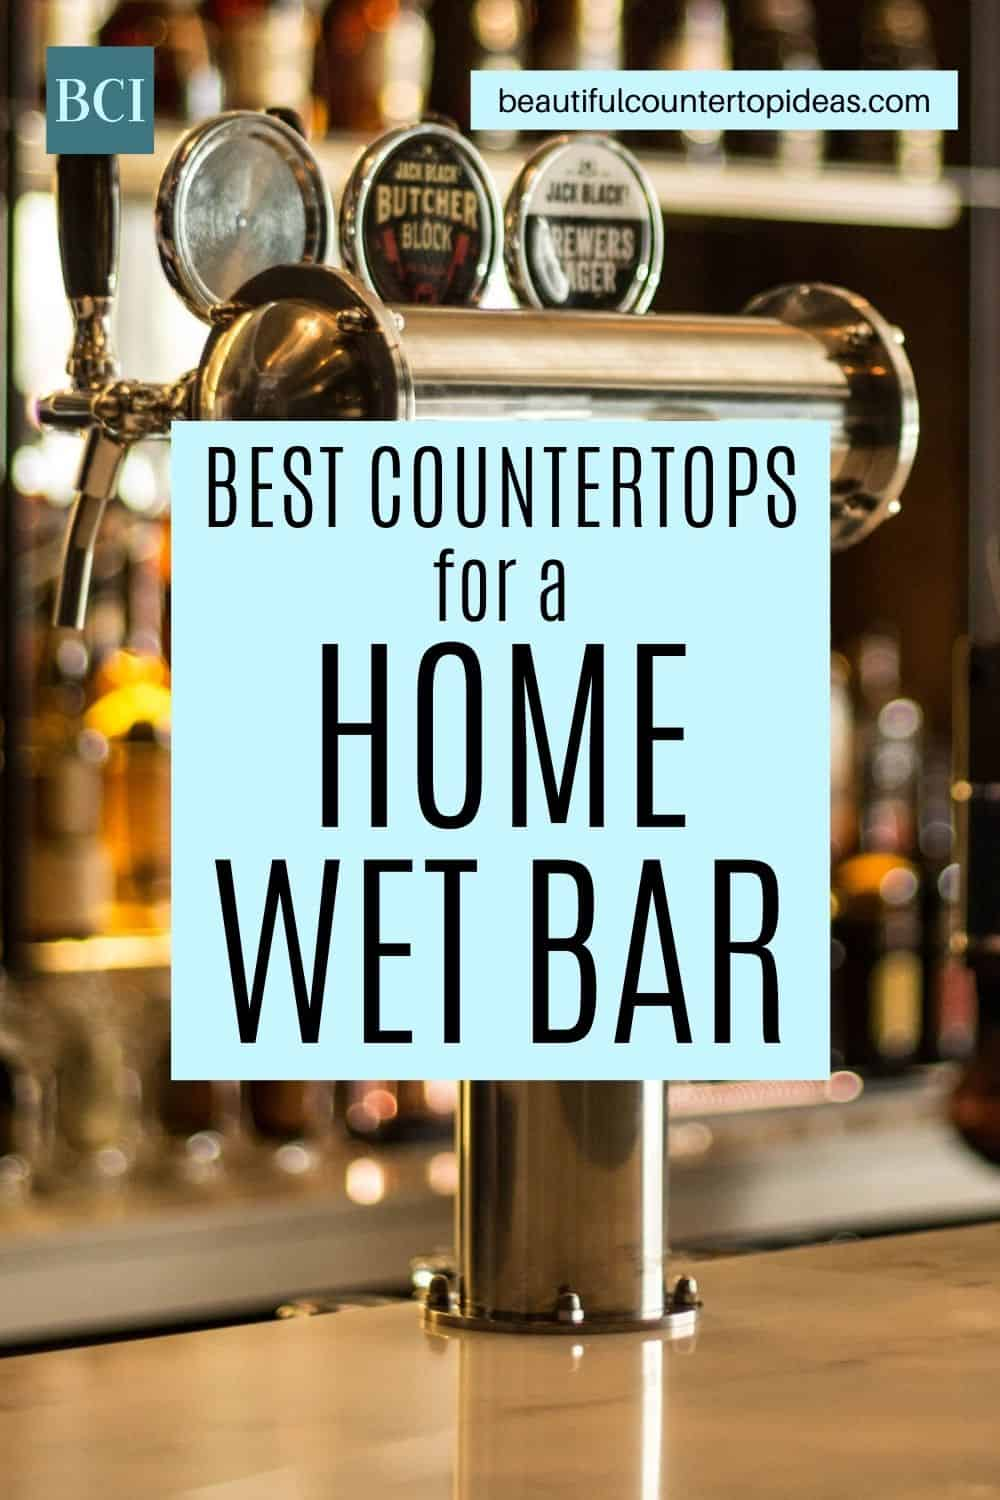 Explore our top five options for a home wet bar countertop. These beautiful, durable, and easy to care for choices are perfect for your home bar.